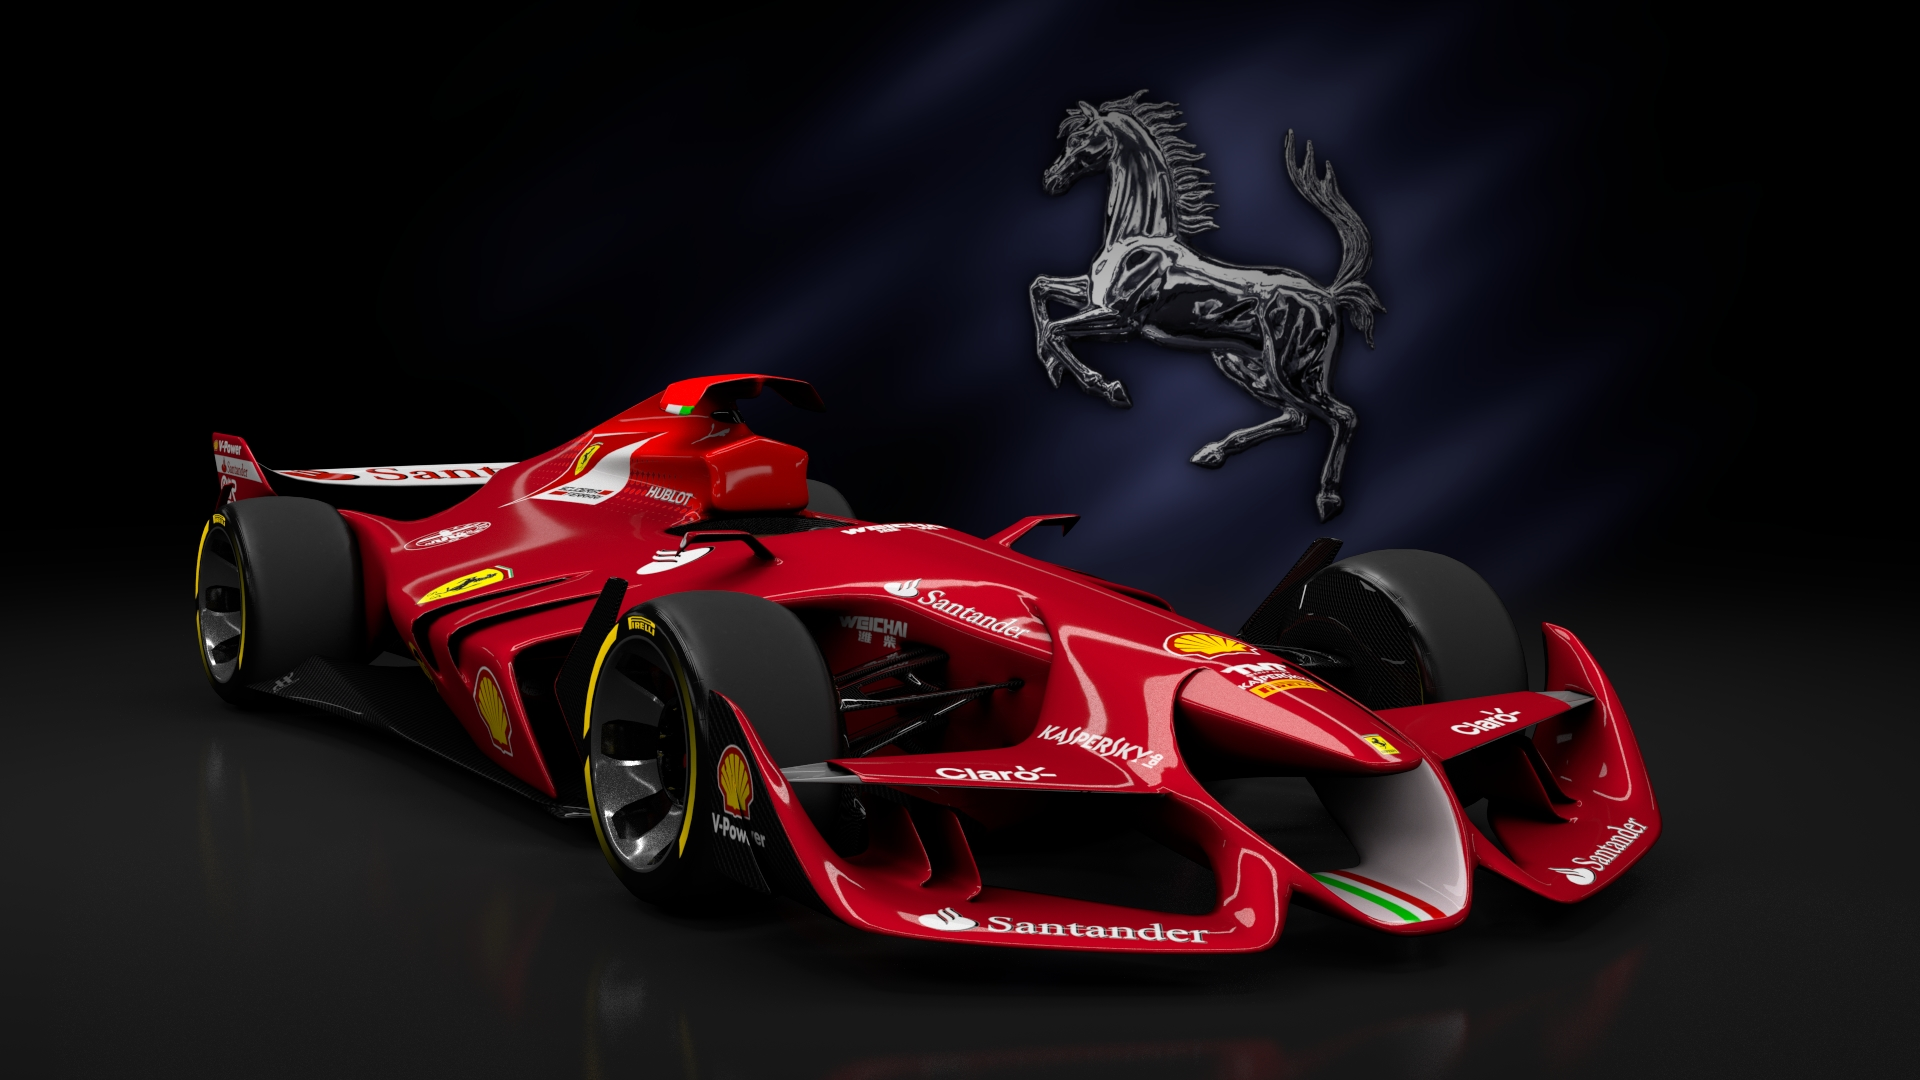 ferrari f1 concept formula car detail assetto corsa database. Black Bedroom Furniture Sets. Home Design Ideas